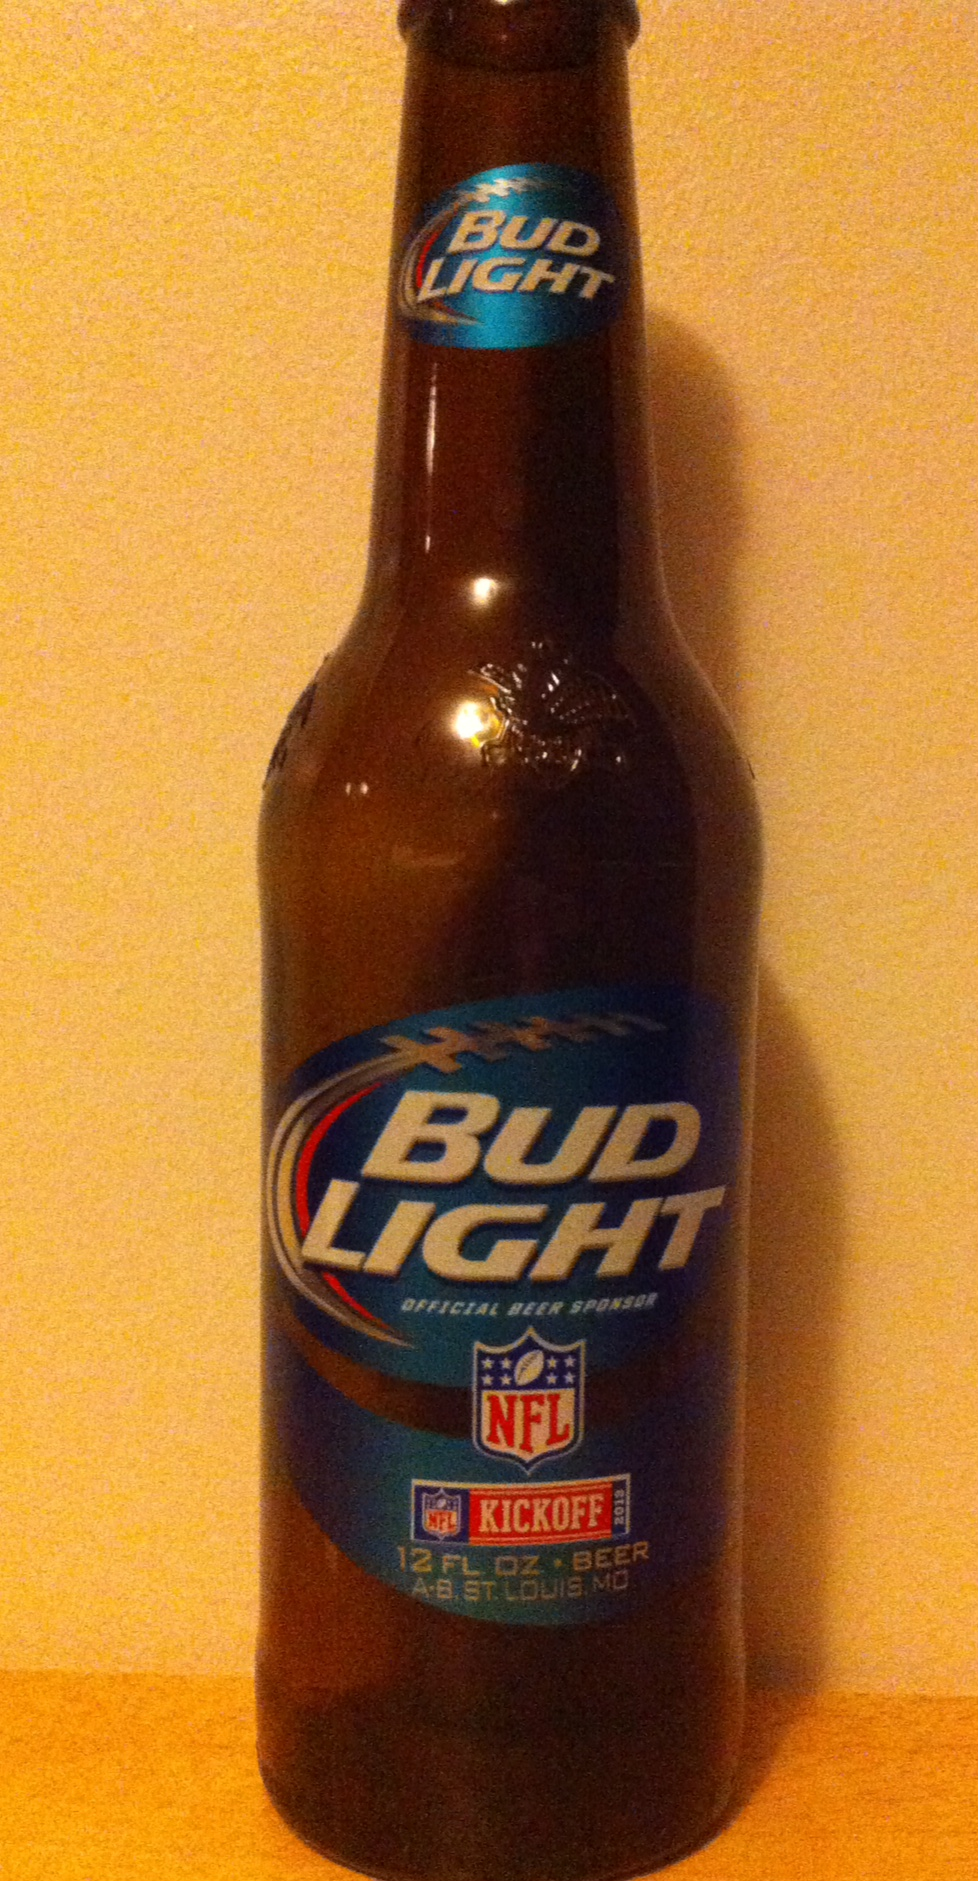 Wonderful Bud Light 4.2% ABV Bud Light